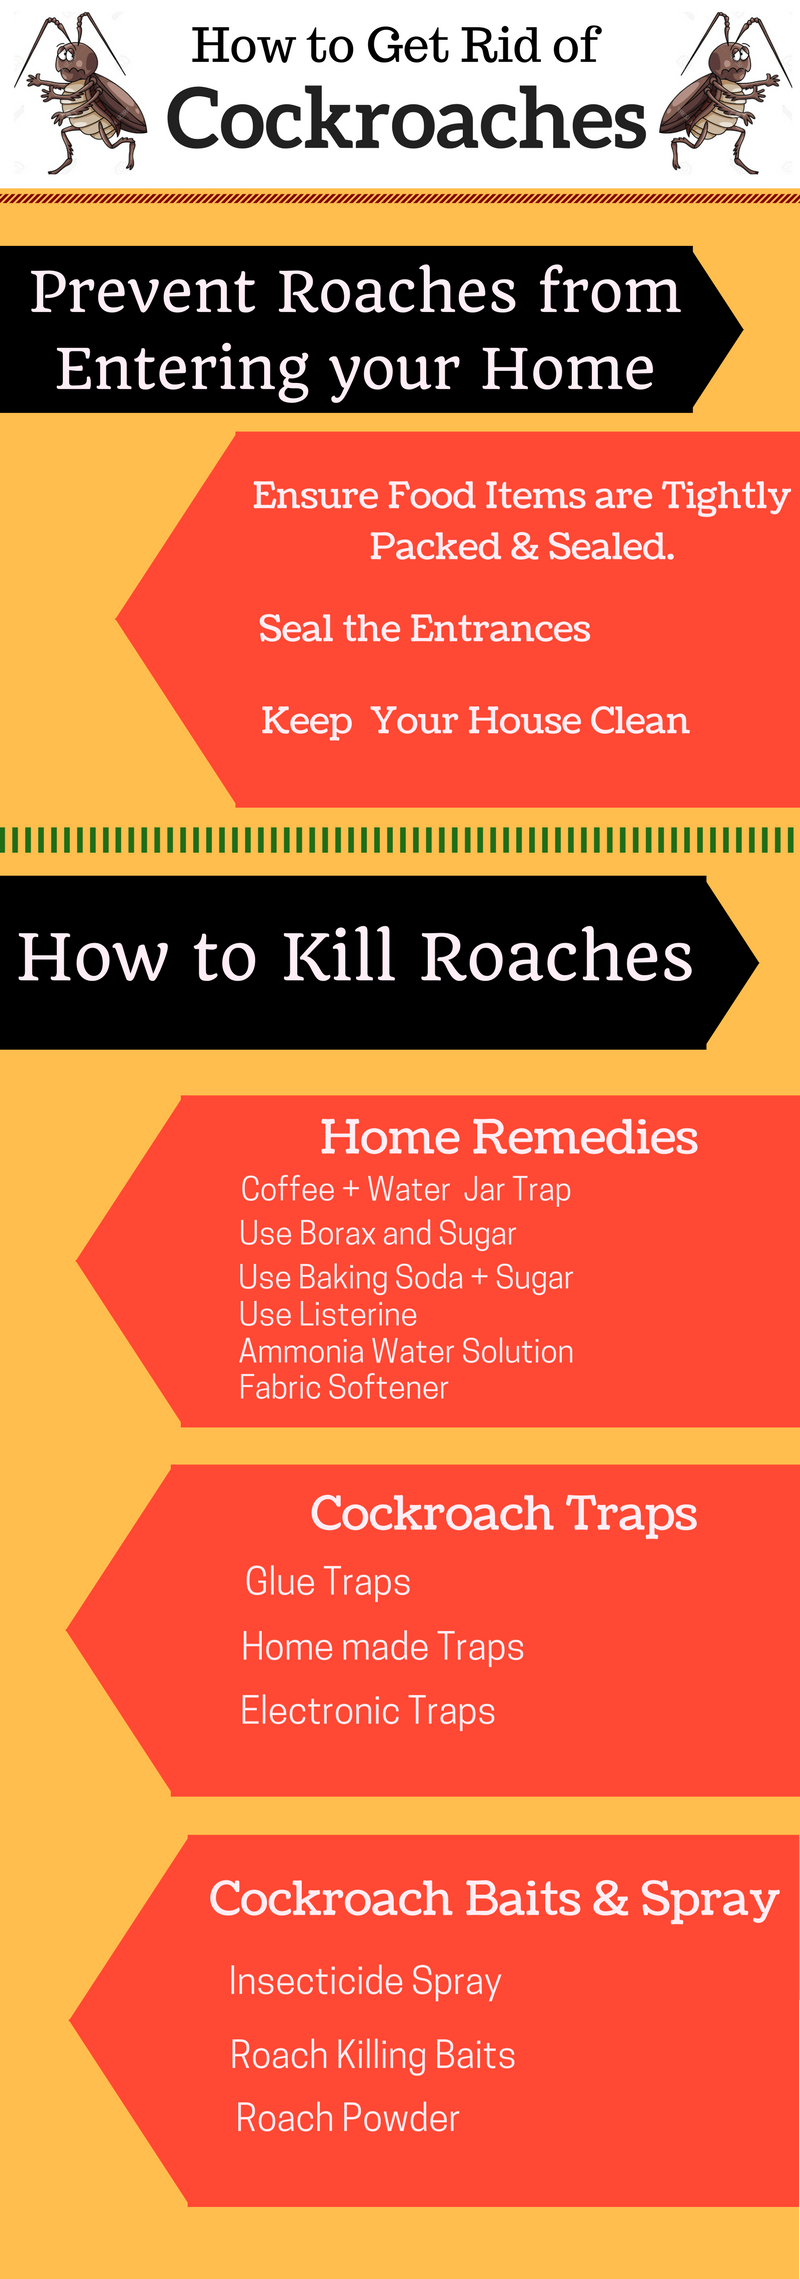 get-rid-of-roaches